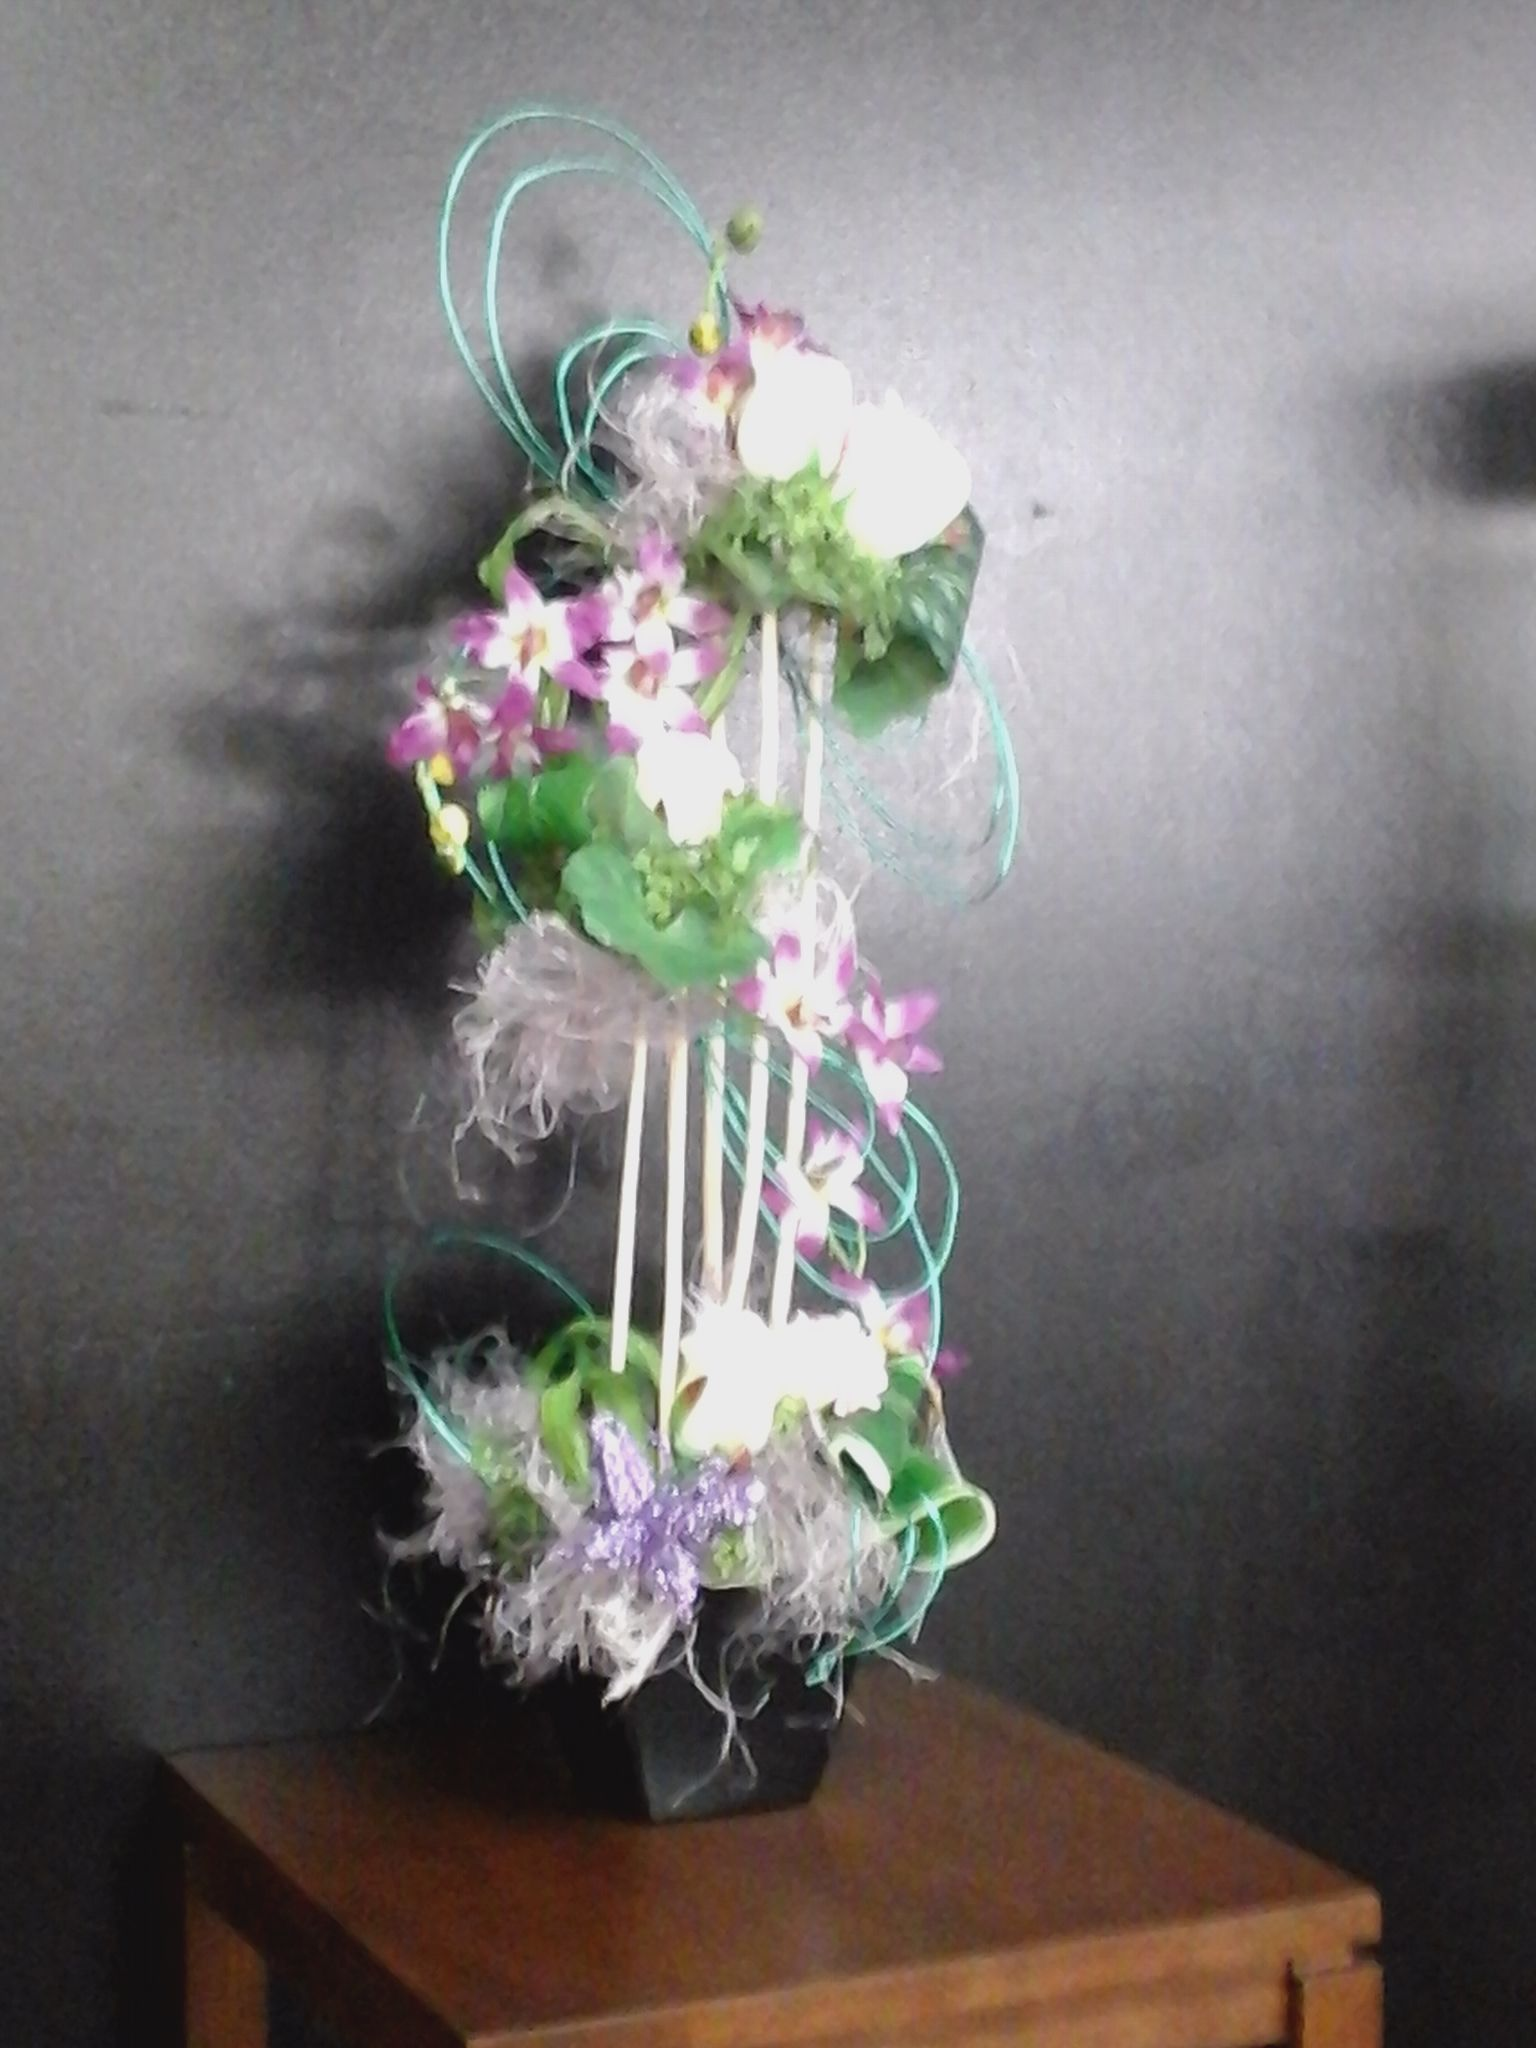 The beauty of silk arrangements is that you can create a